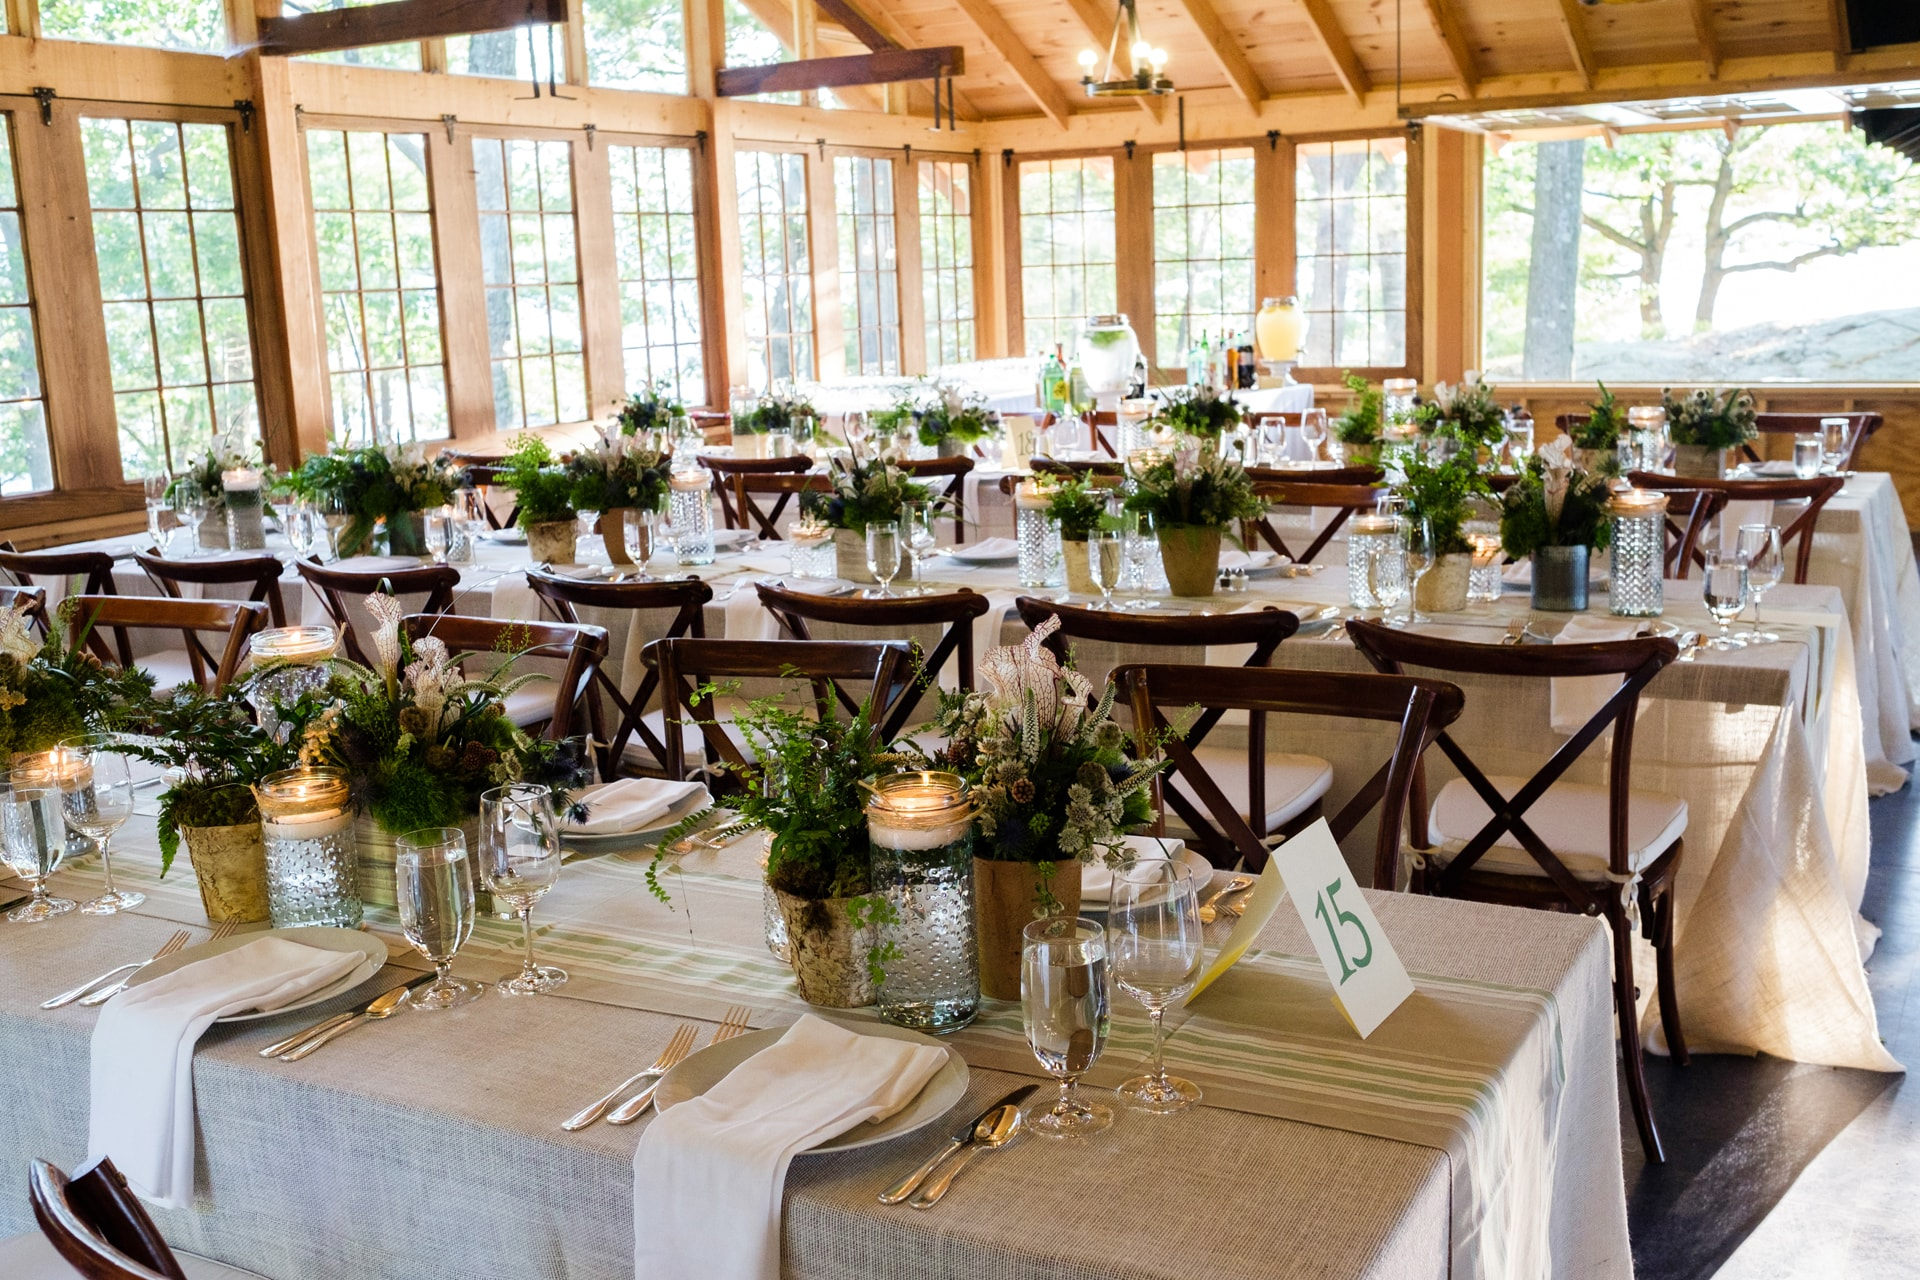 Elegant Effects in Floral Design - Barn Wedding Reception